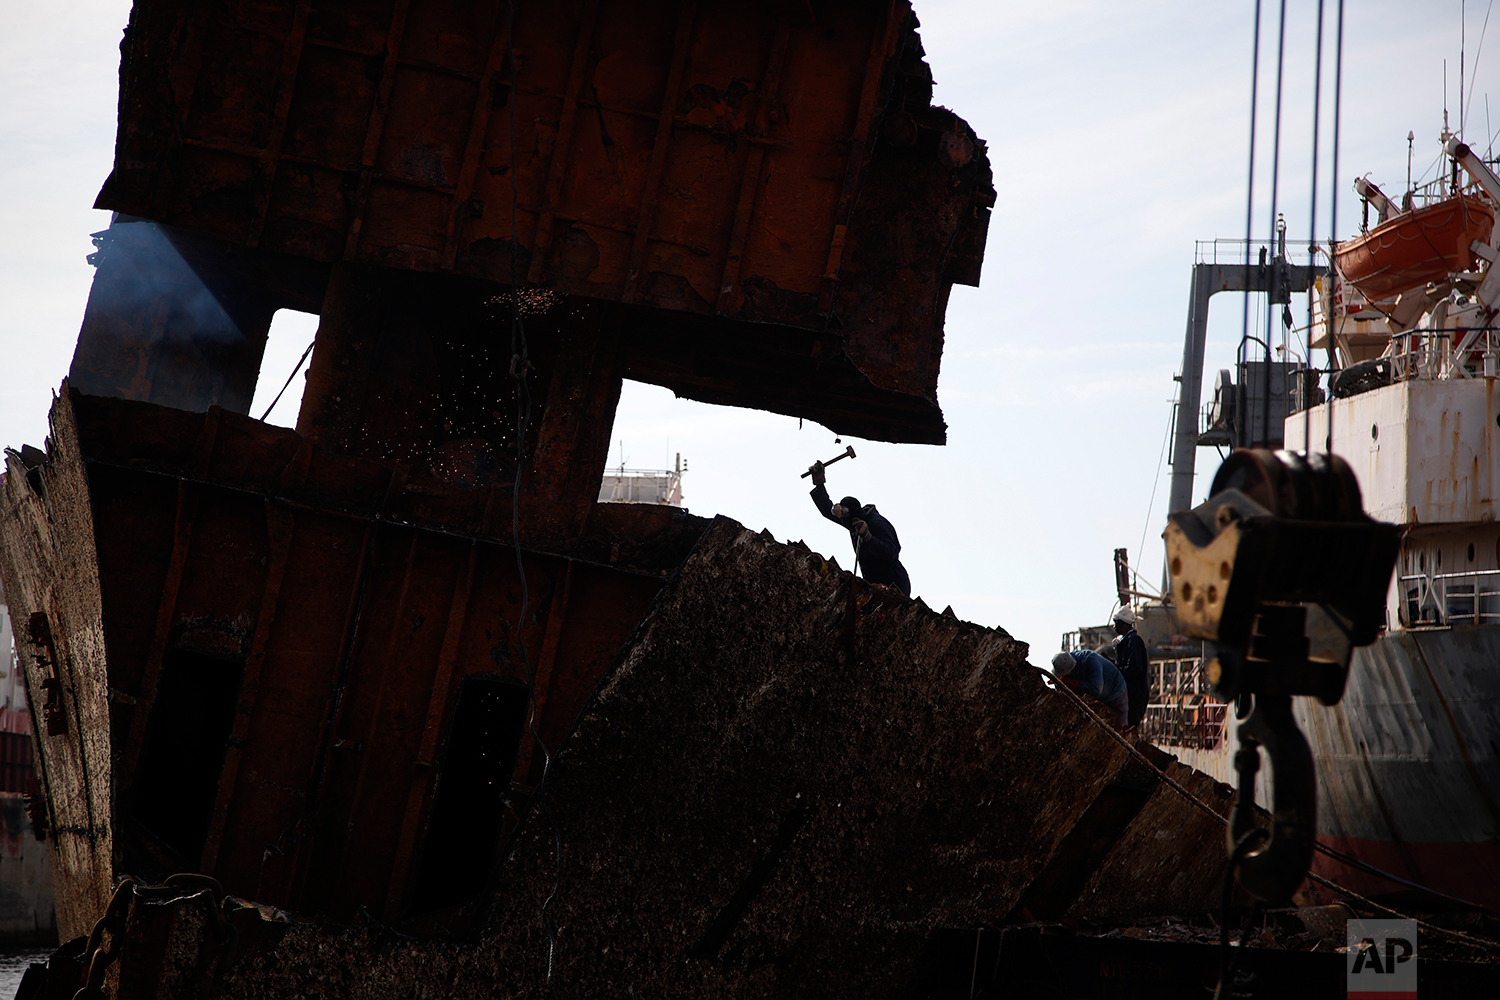 In this Monday, Nov. 5, 2018 photo, in a shipyard of Perama, west of Athens, workers cut up the rusted remains of a ferry that was recovered after spending years as a shipwreck. (AP Photo/Thanassis Stavrakis)